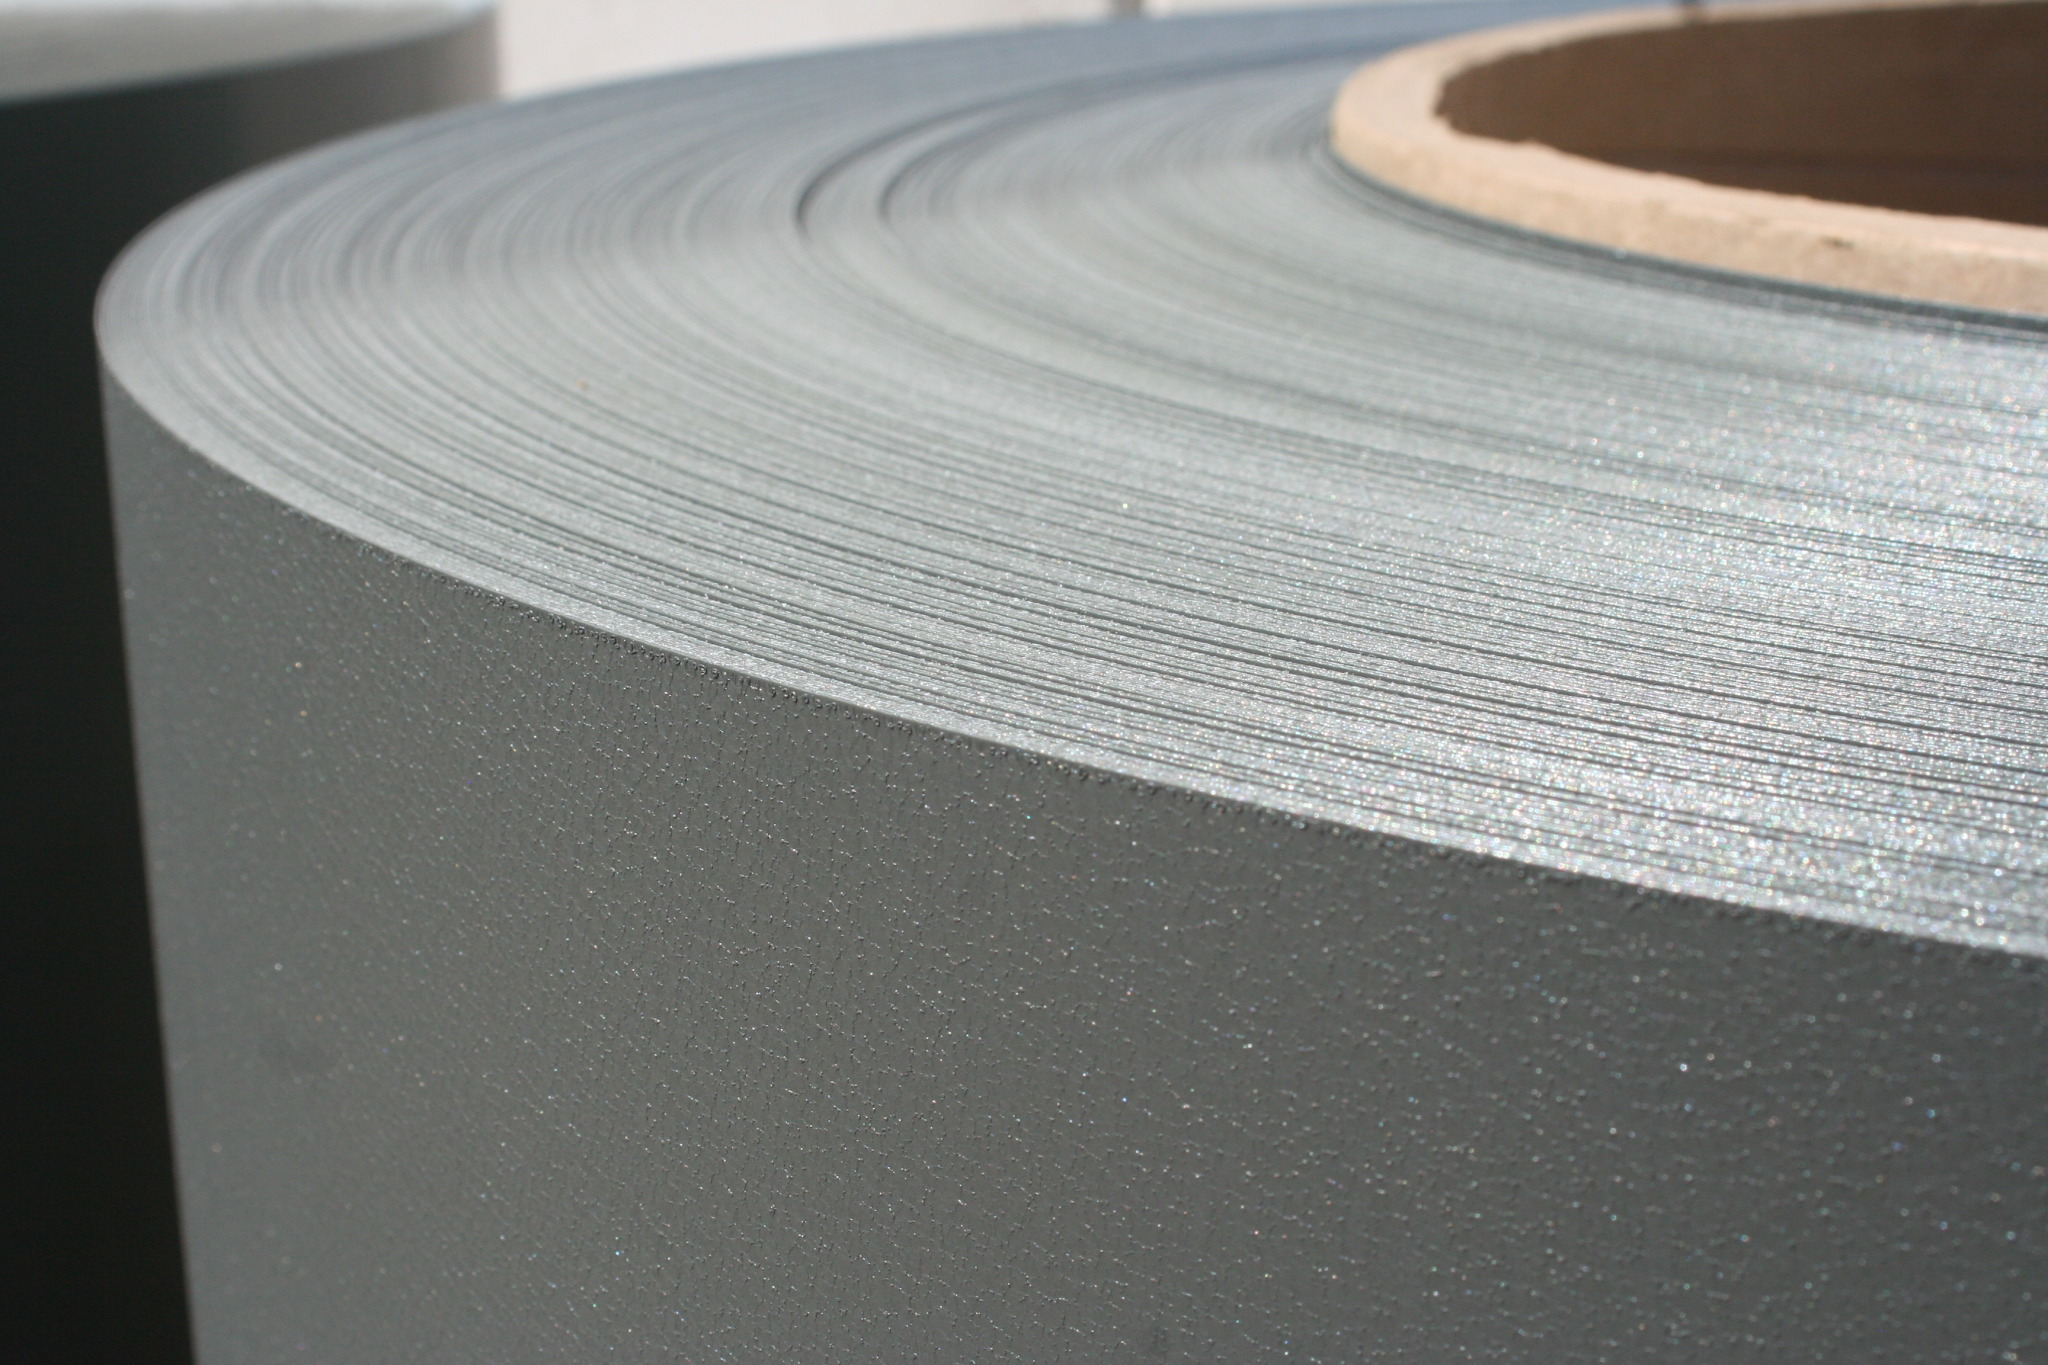 Coated Metals Group has launched its textured steel coil, TEXTUR3D.